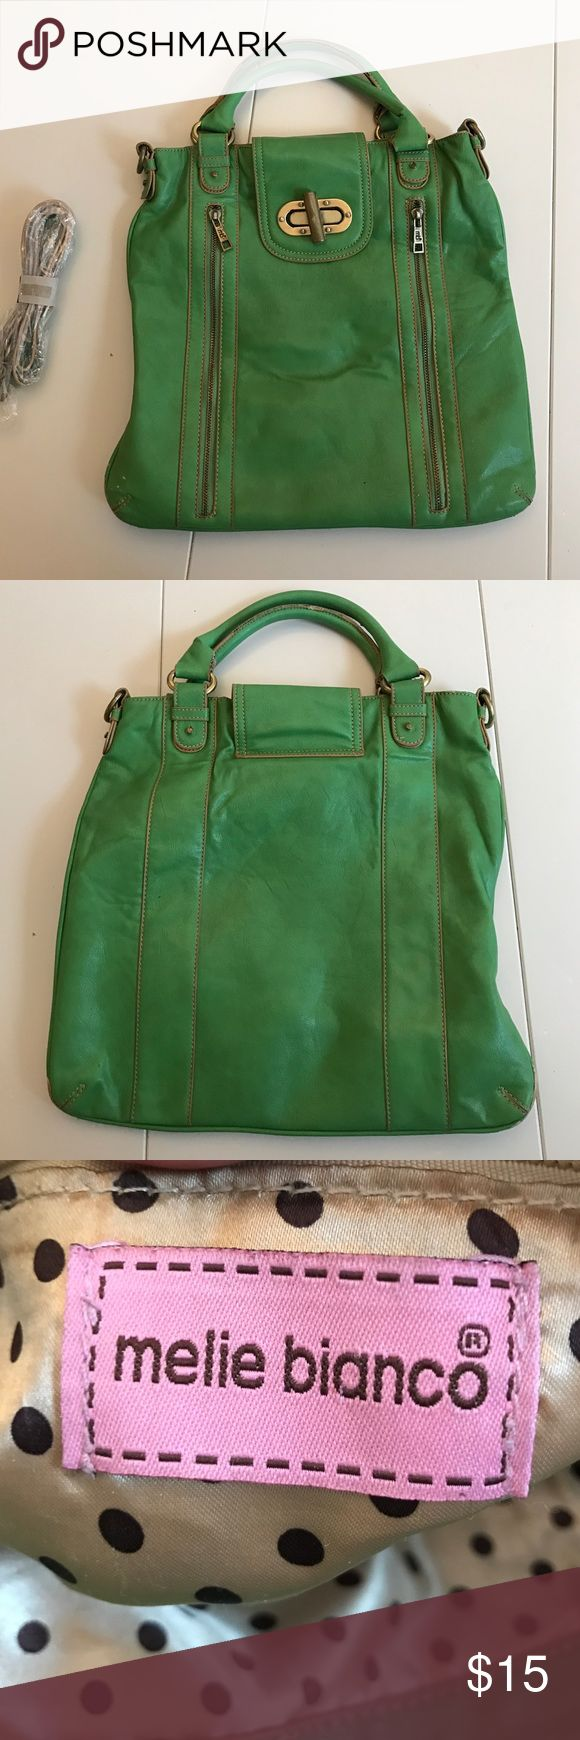 Melie Bianco Green Handbag Fun Green Handbag from Melie Bianco. Comes with unused shoulder strap or can be used with handles only. Used. Melie Bianco Bags Shoulder Bags